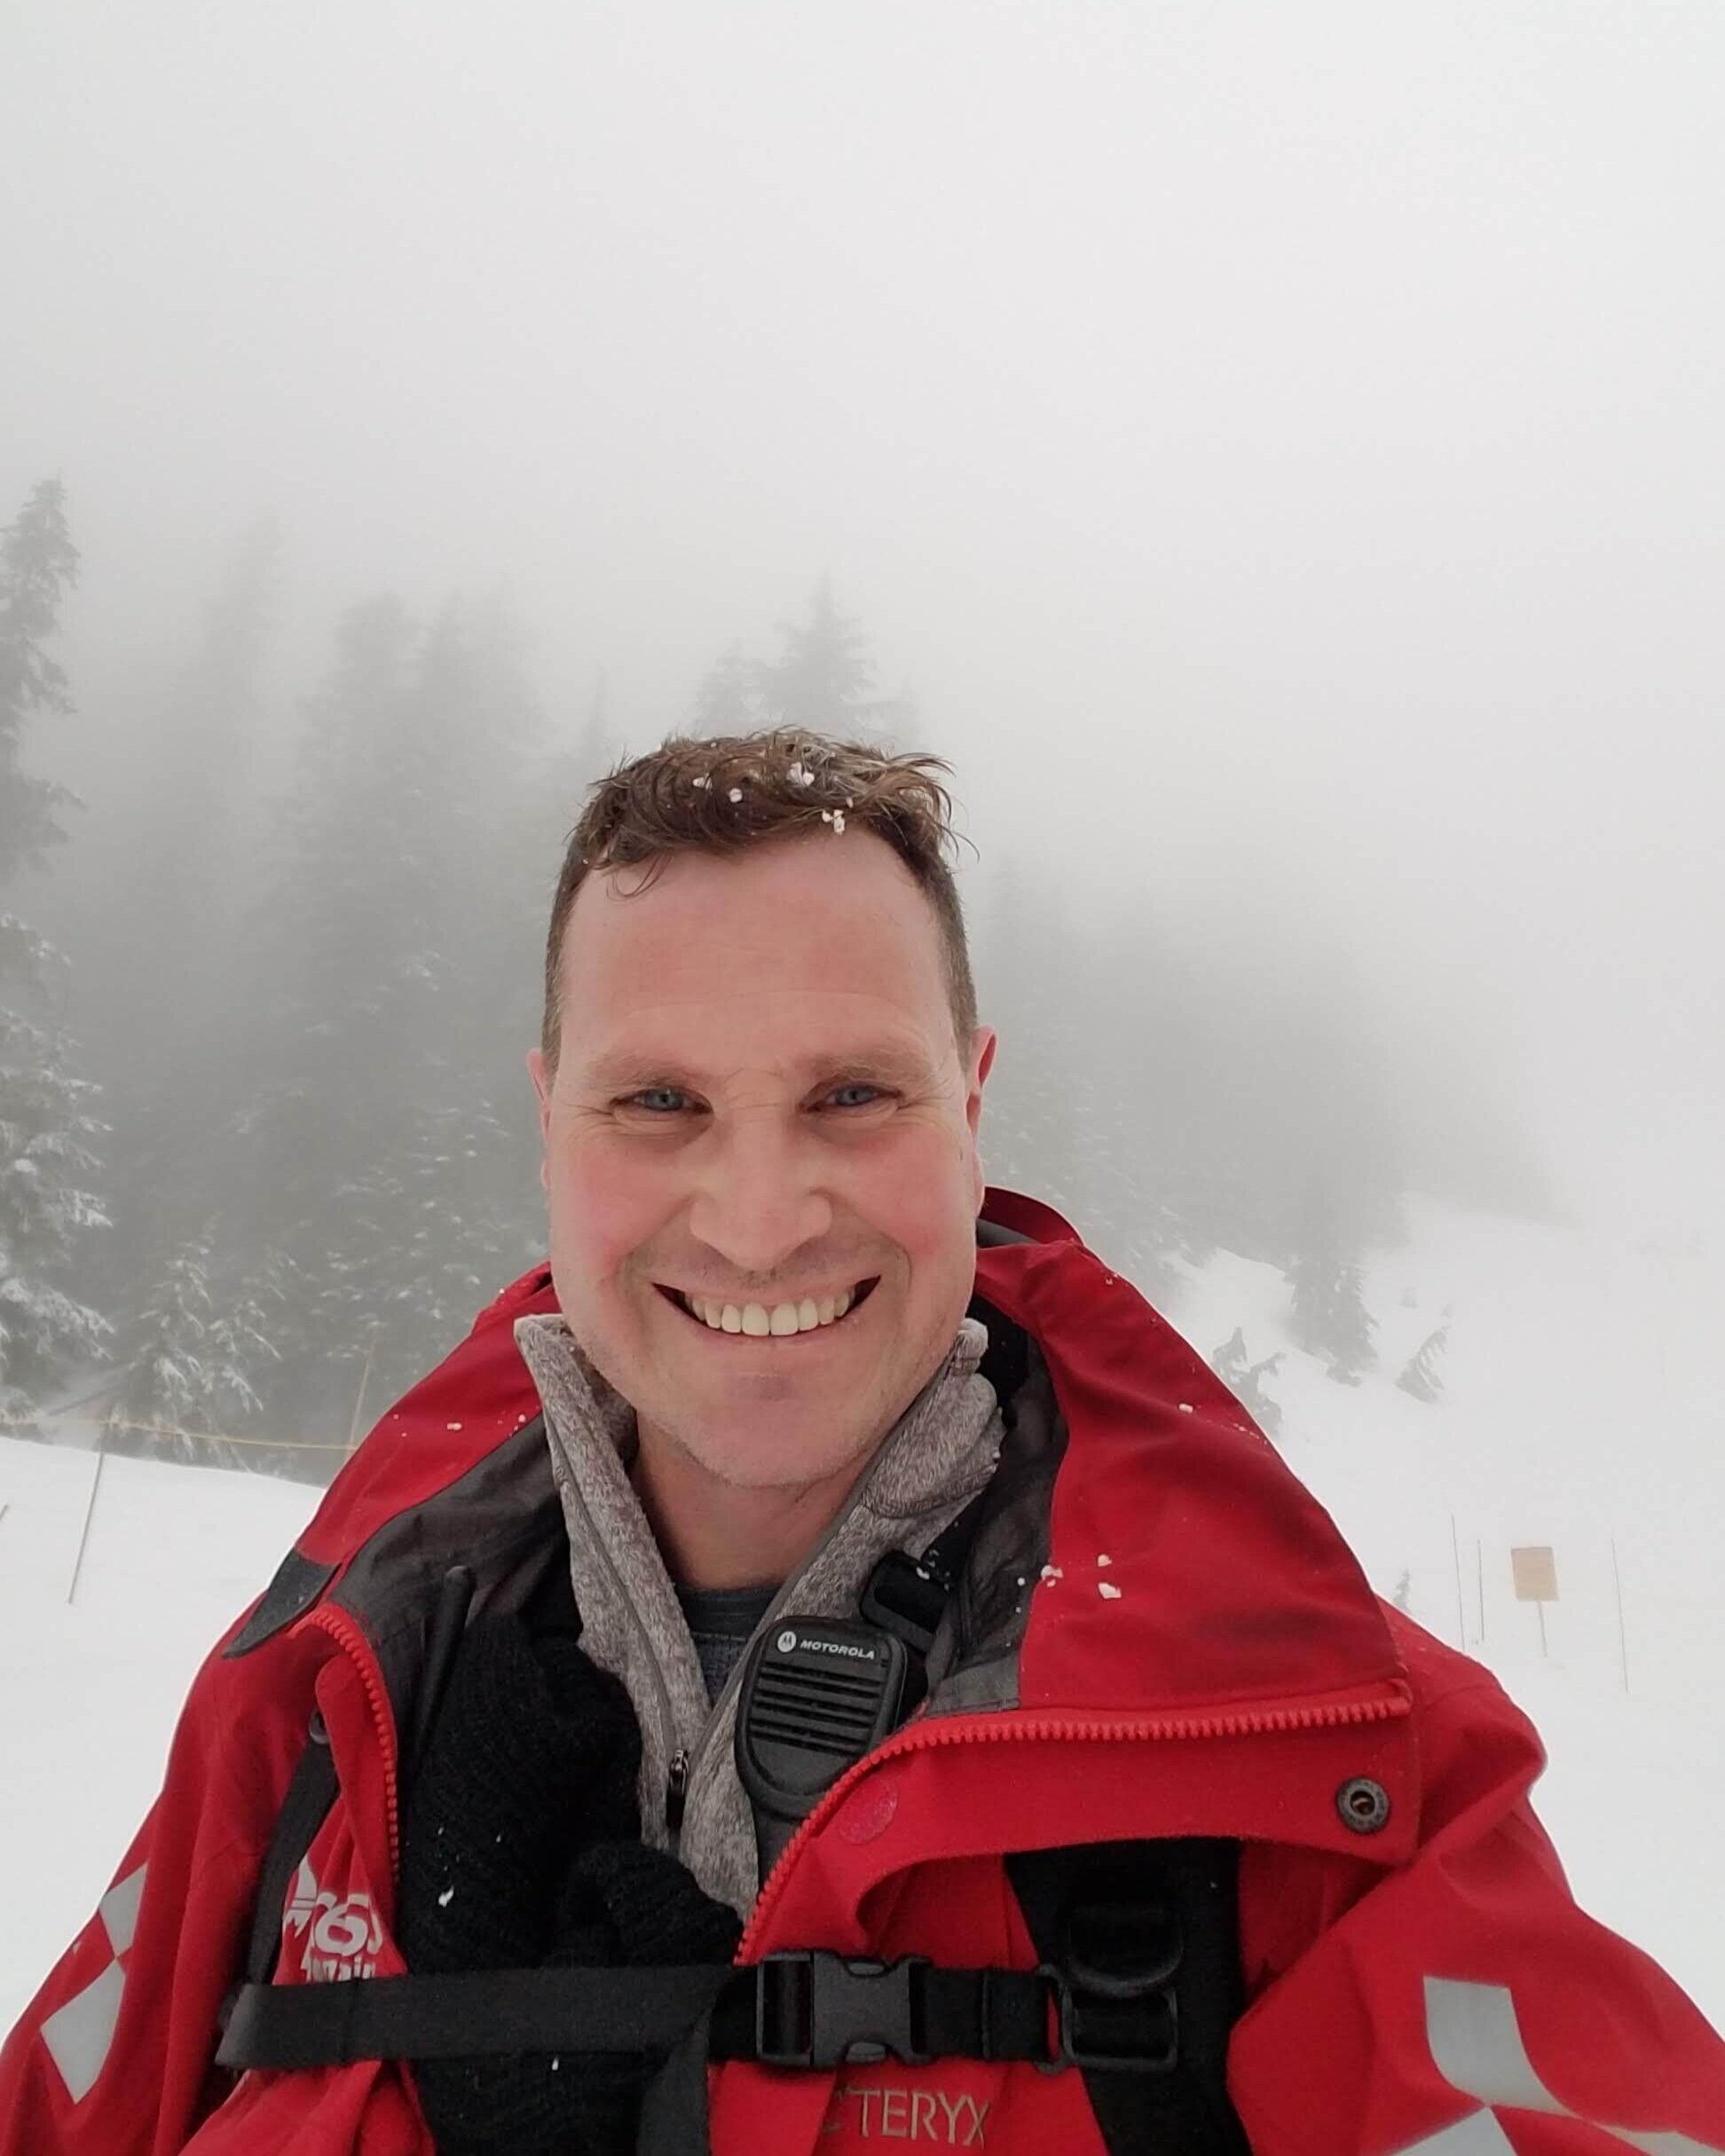 Kieran Hartle - Kieran Hartle (PCP-IV) is program director at Coast Wilderness Medical.  He is a paramedic with British Columbia Ambulance Service, and a volunteer Ski Patroller at Cypress Mountain. Kieran is one of Canada's first Red Cross Wilderness First Responder Instructors.